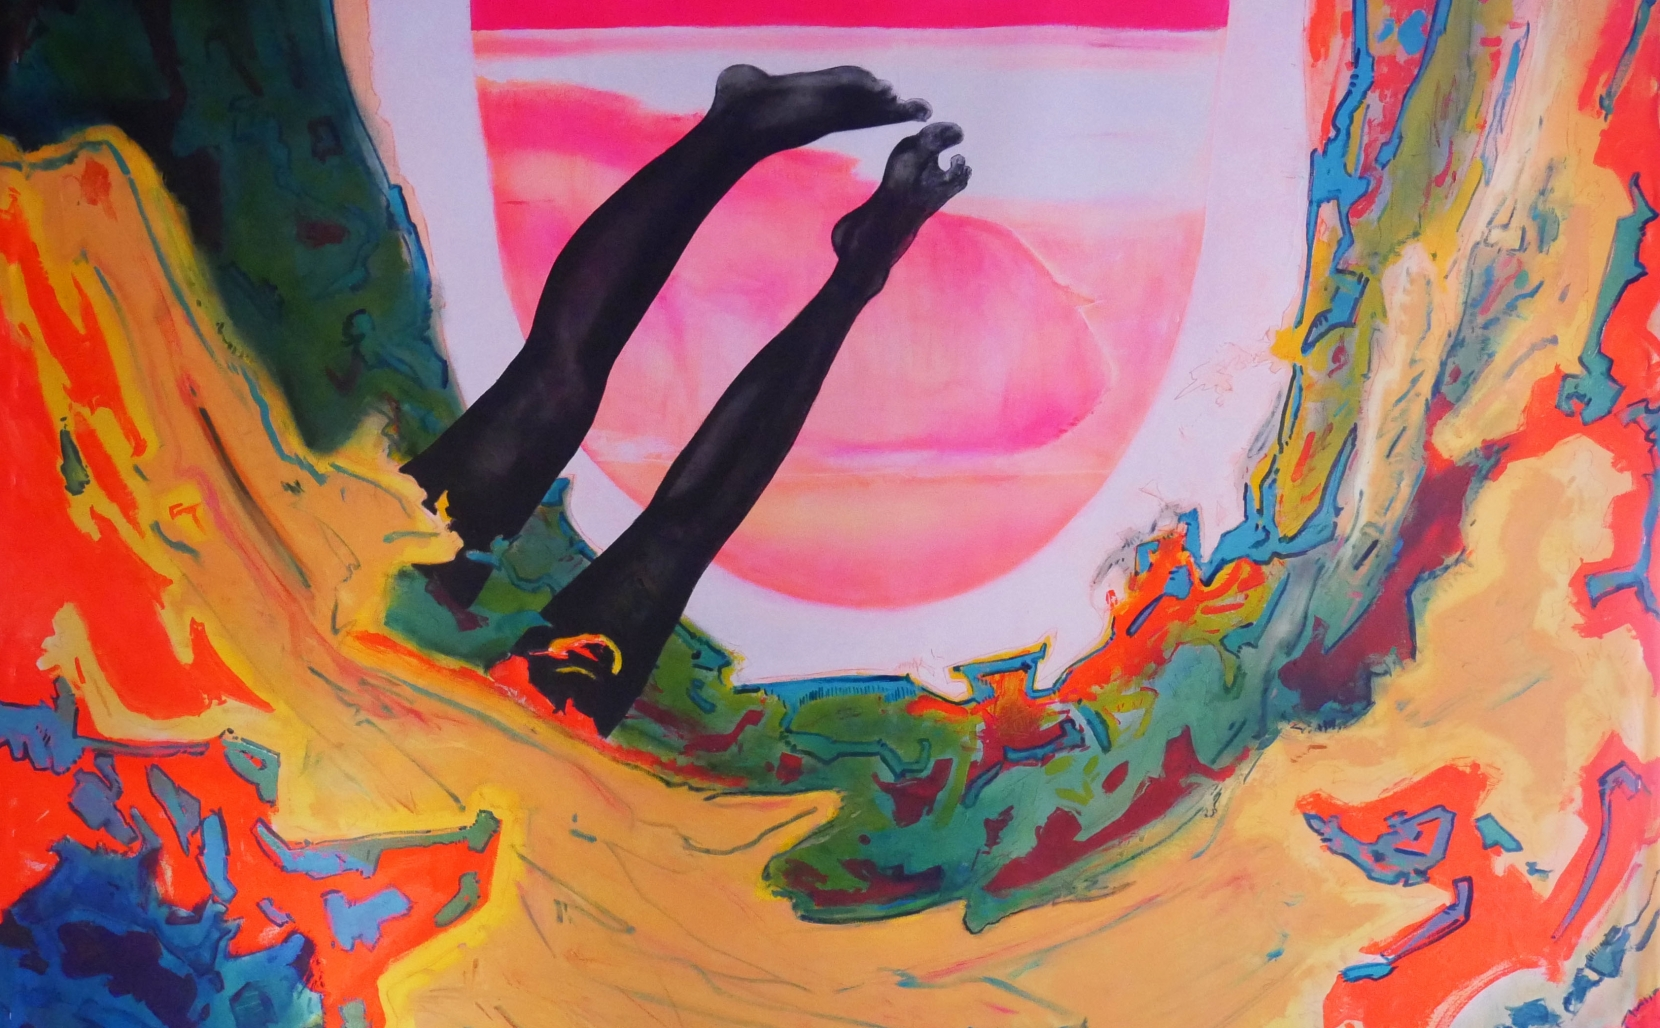 Cy Gavin on the Socio-political Dimensions of his Kaleidoscopic Paintings at VNH Gallery